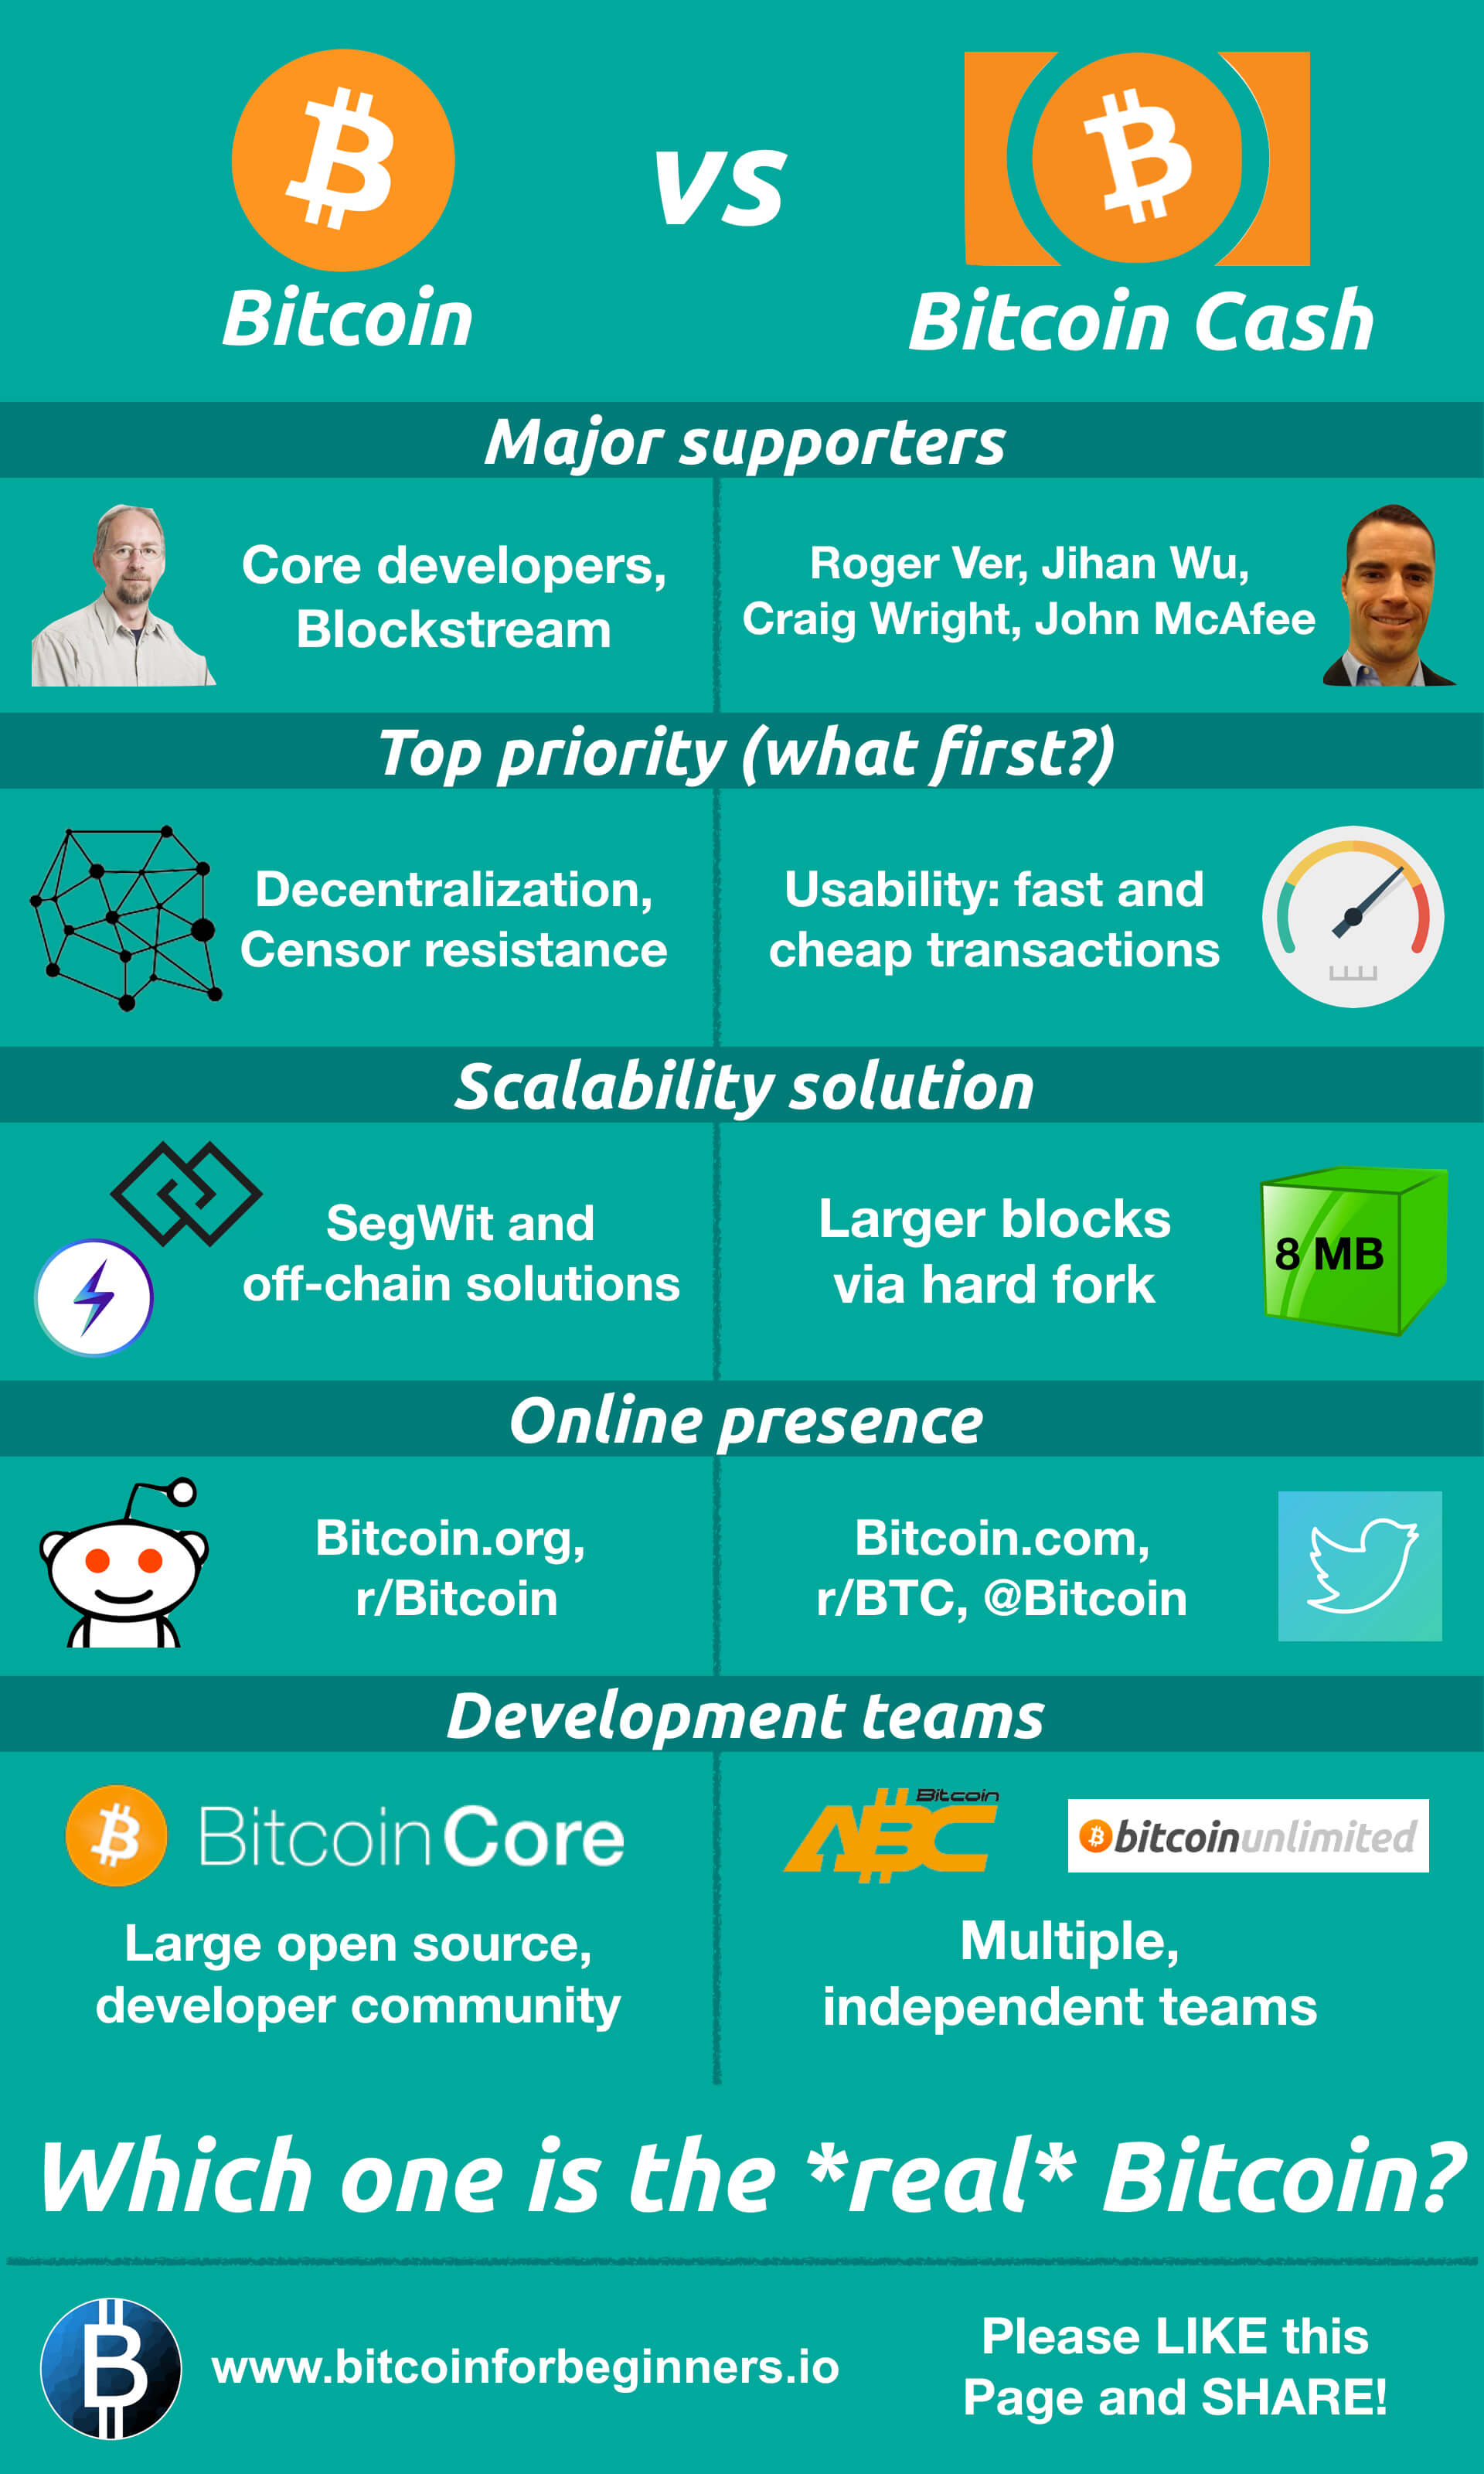 Bitcoin vs Bitcoin Cash Infographic